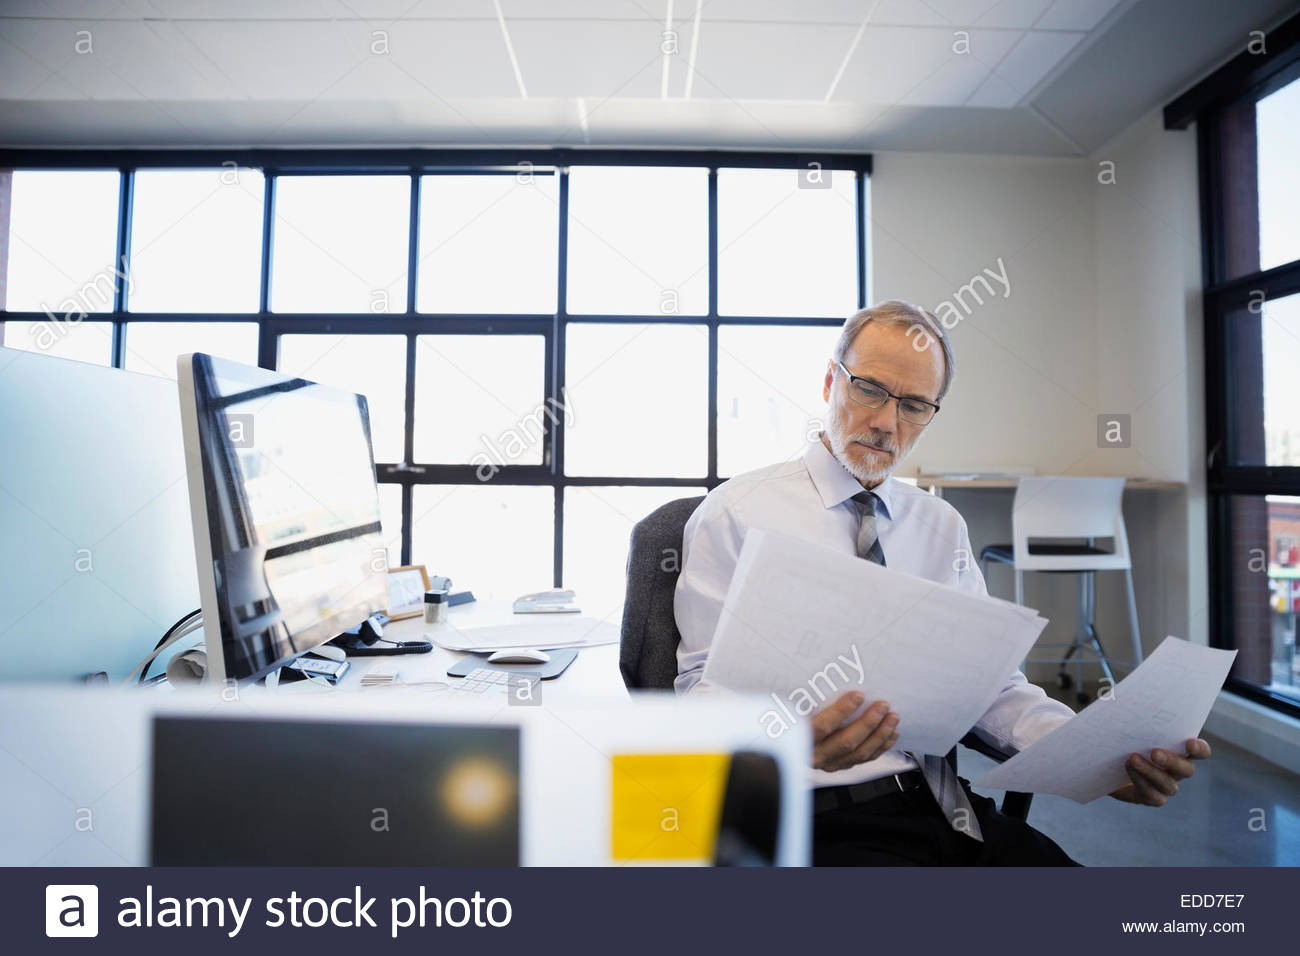 Architect reviewing plans in office - Stock Image